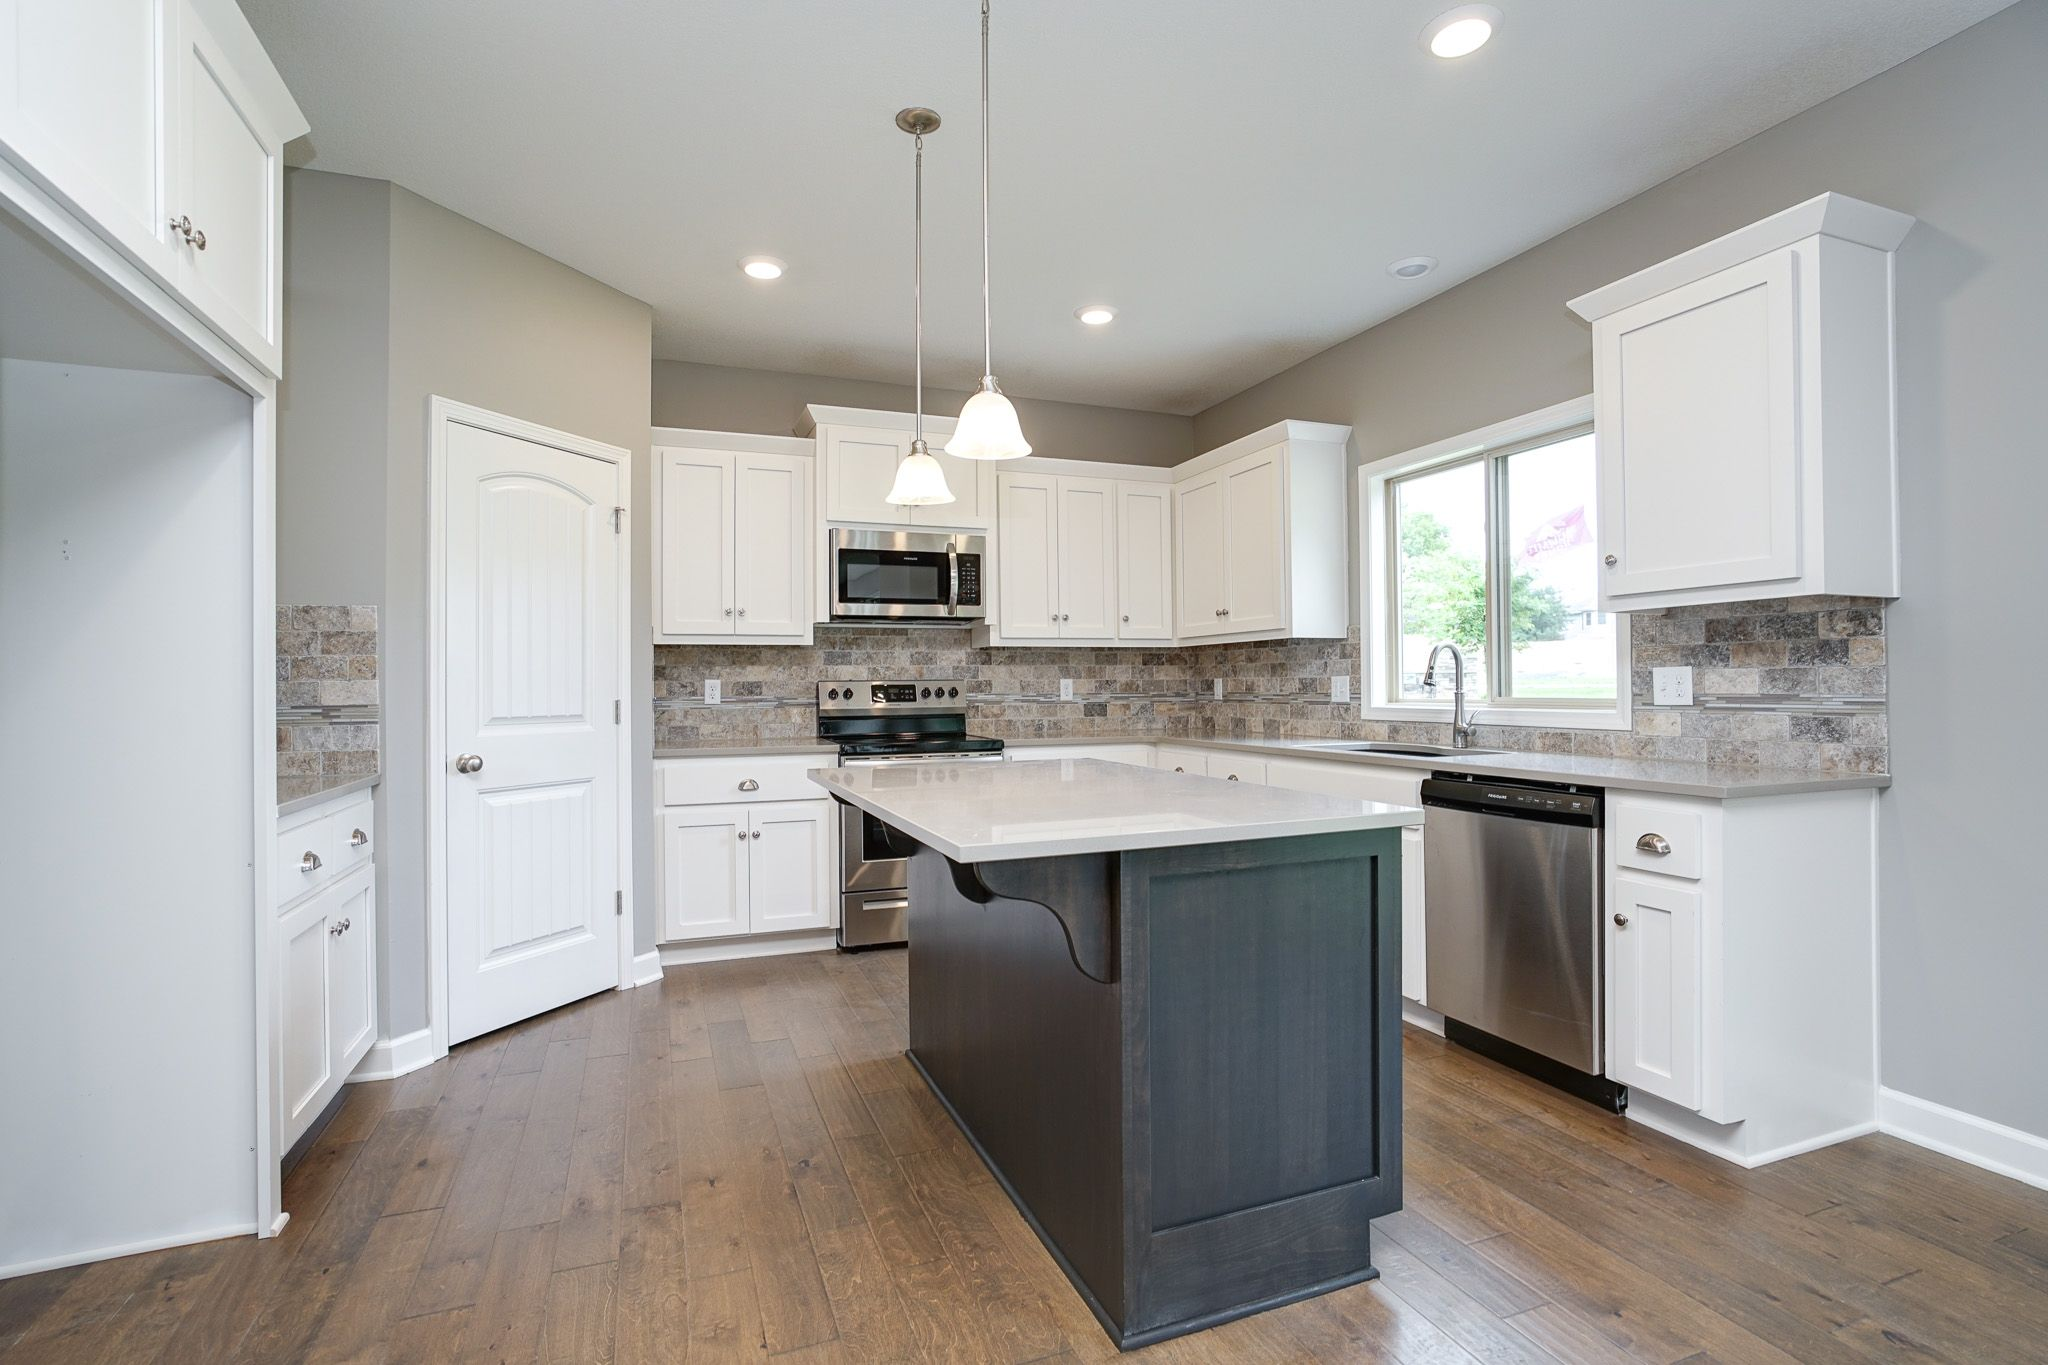 Kitchen featured in the Woodbridge - IA By Summit Homes in Des Moines, IA